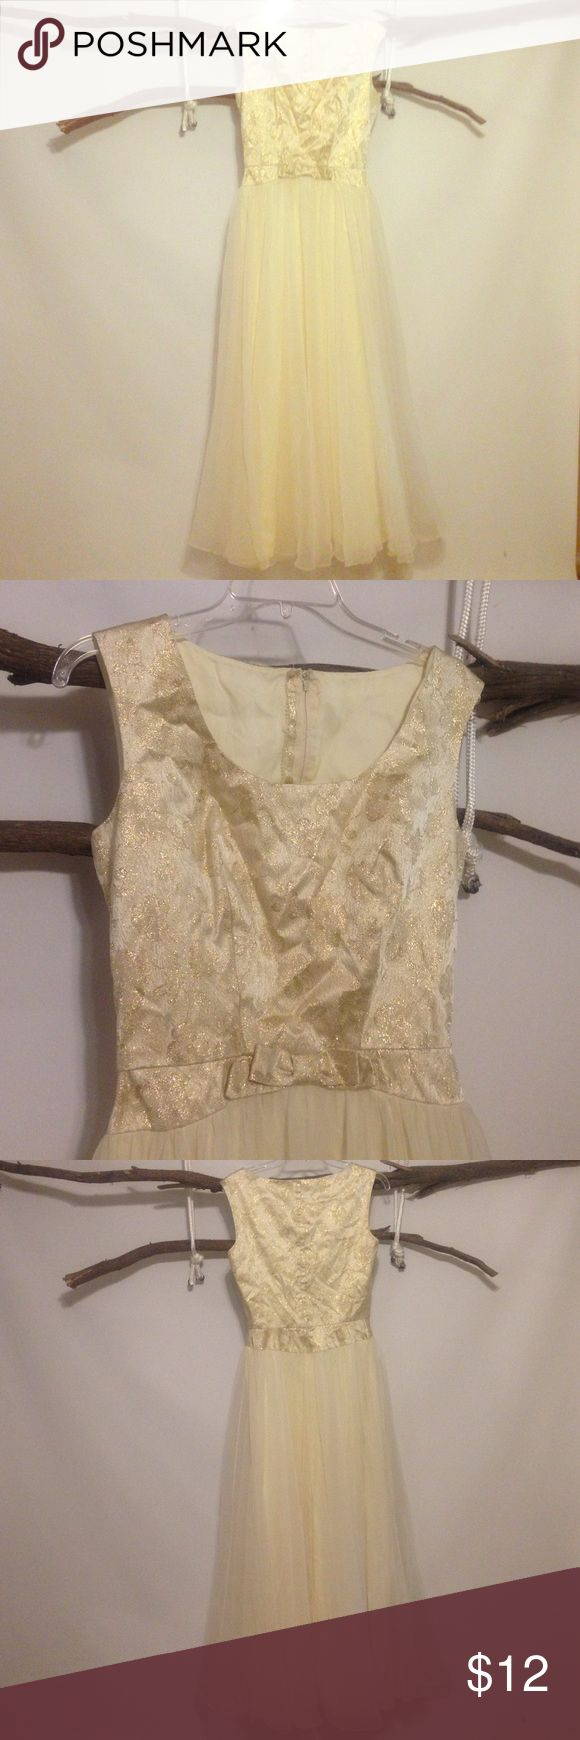 """Gold and Cream Formal Lined. Back zipper. Bust 34"""". Waist 26"""". Although this is marked as a 12 - runs small. Length 55"""". Dry clean only mike benet formals Dresses Prom"""